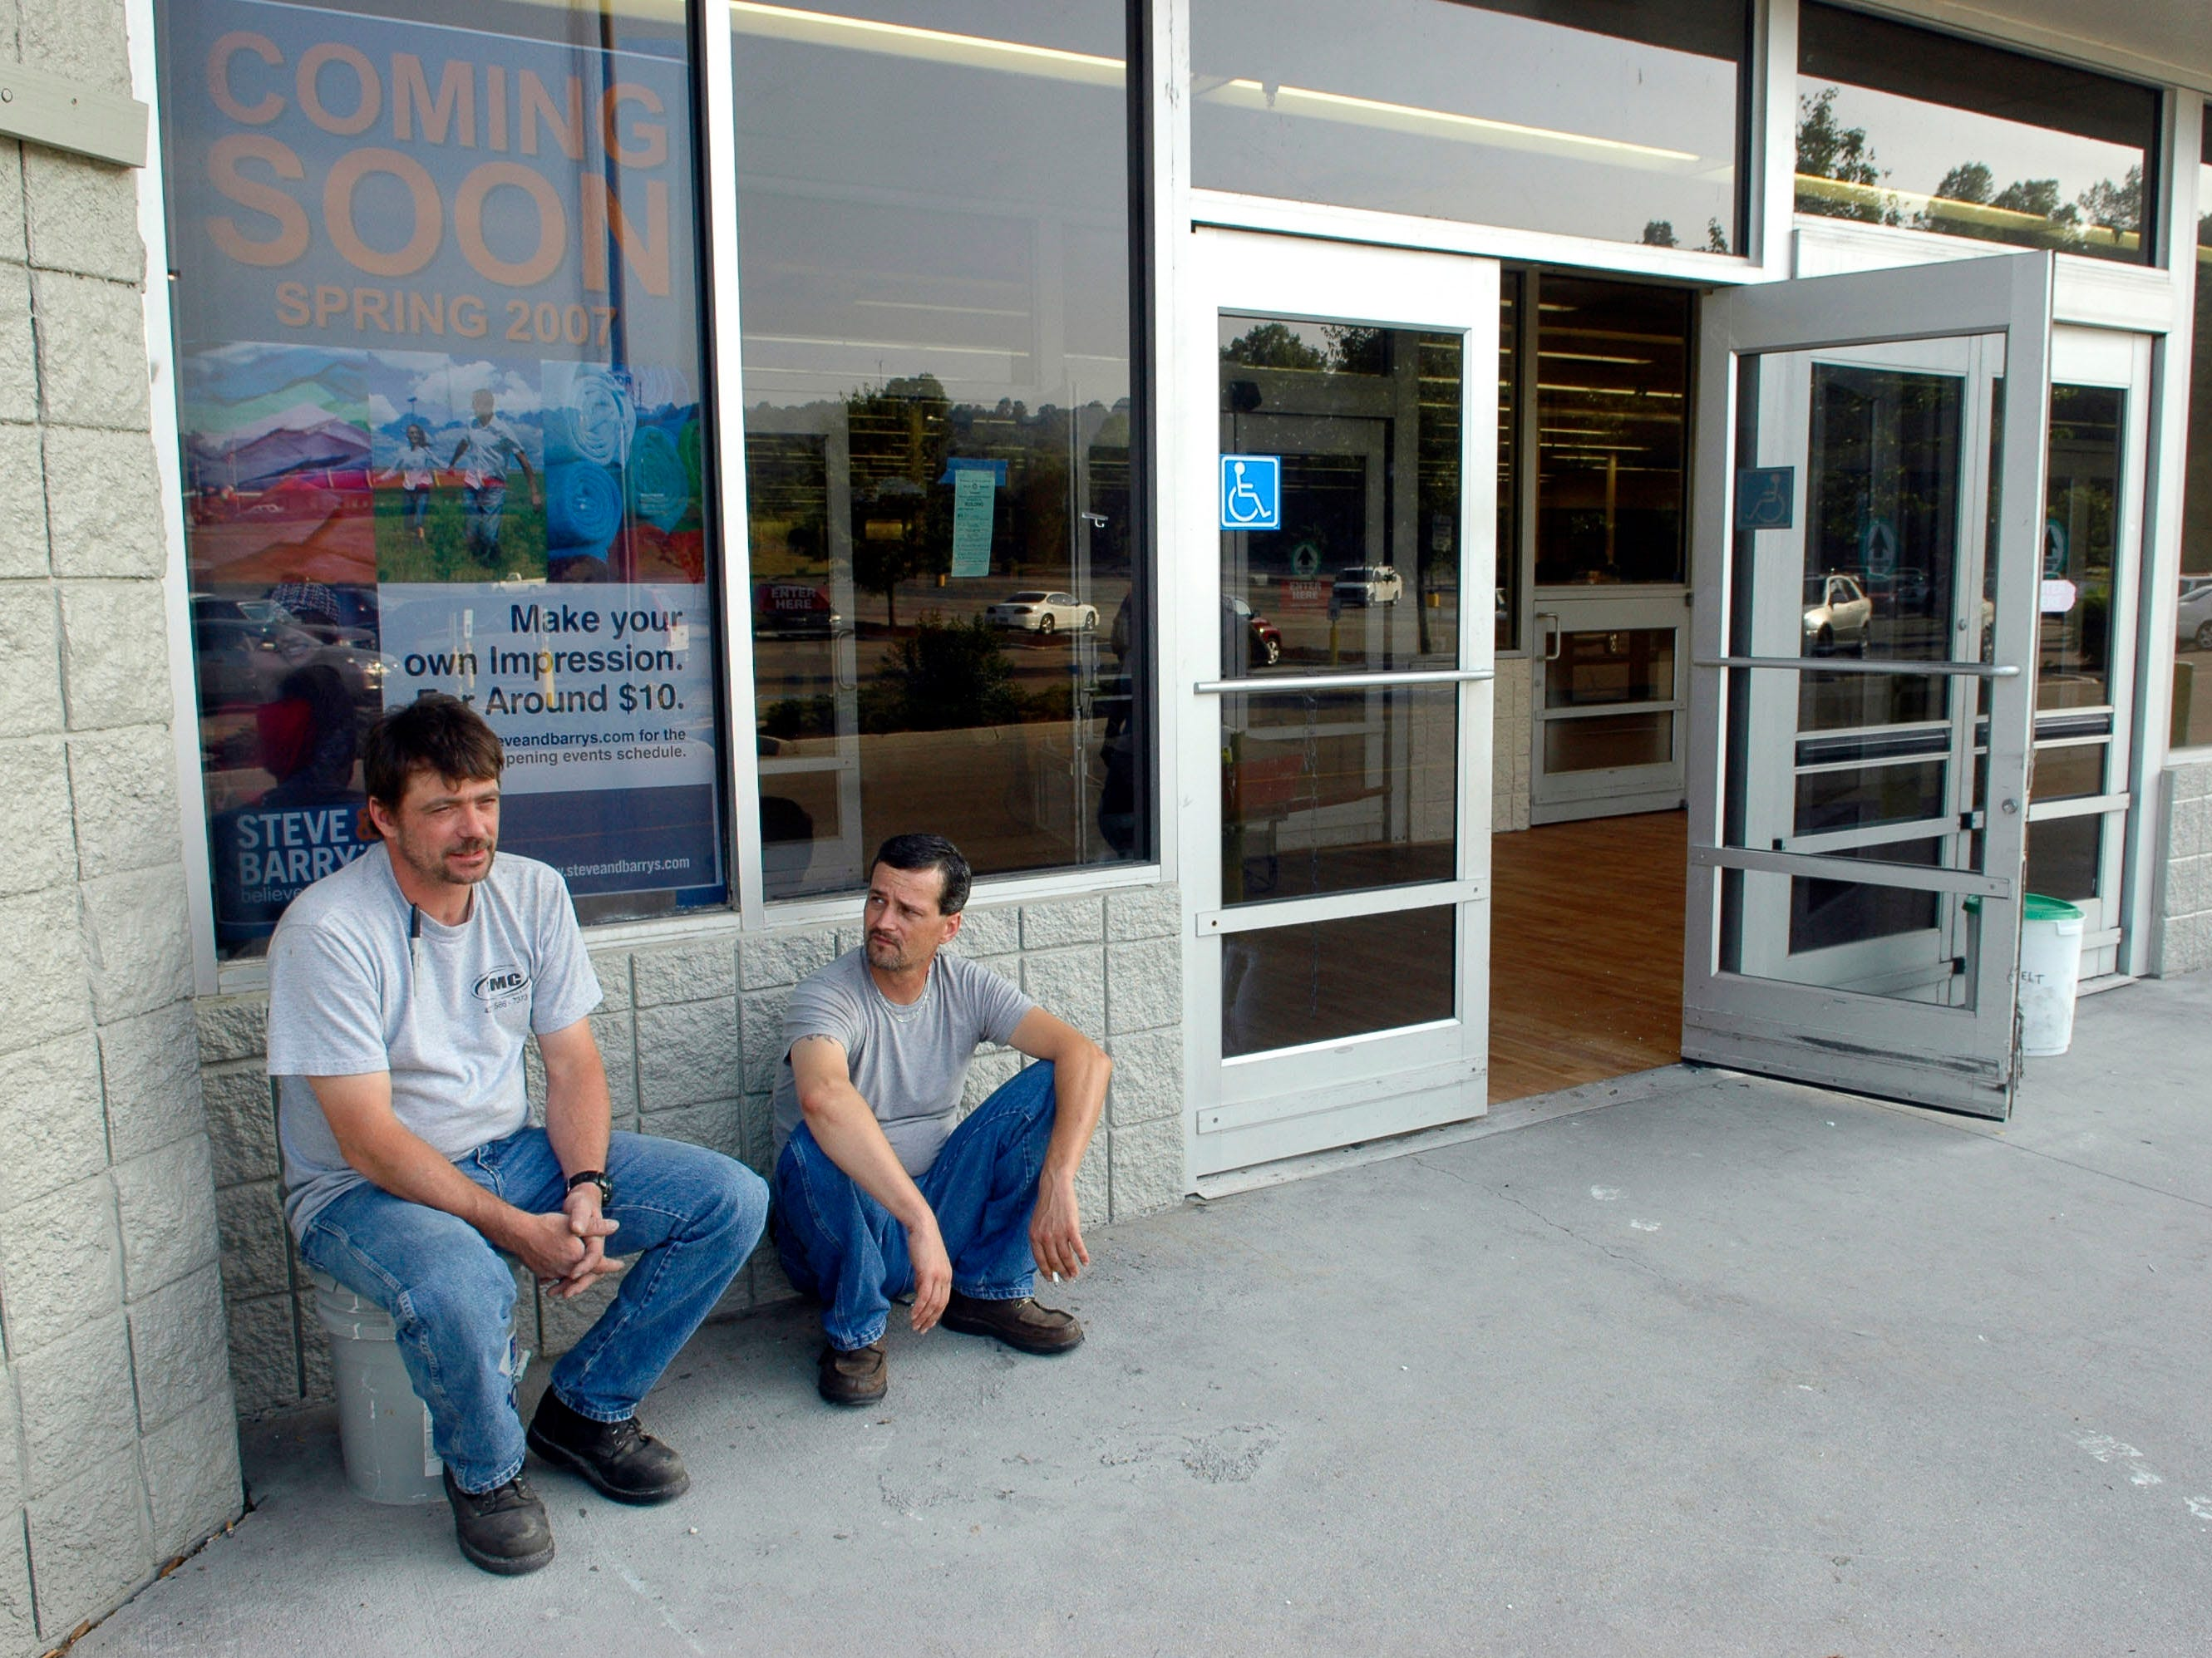 Workers take a break out side on Thursday  June 14, 2007 at the retail location where Steve & Barry's will occupy when renovations are complete. National discount clothing retailer Steve & Barry's will open a 68,000-square-foot location the the former Wal-mart site on the Chapman-Ford Crossing shopping center.